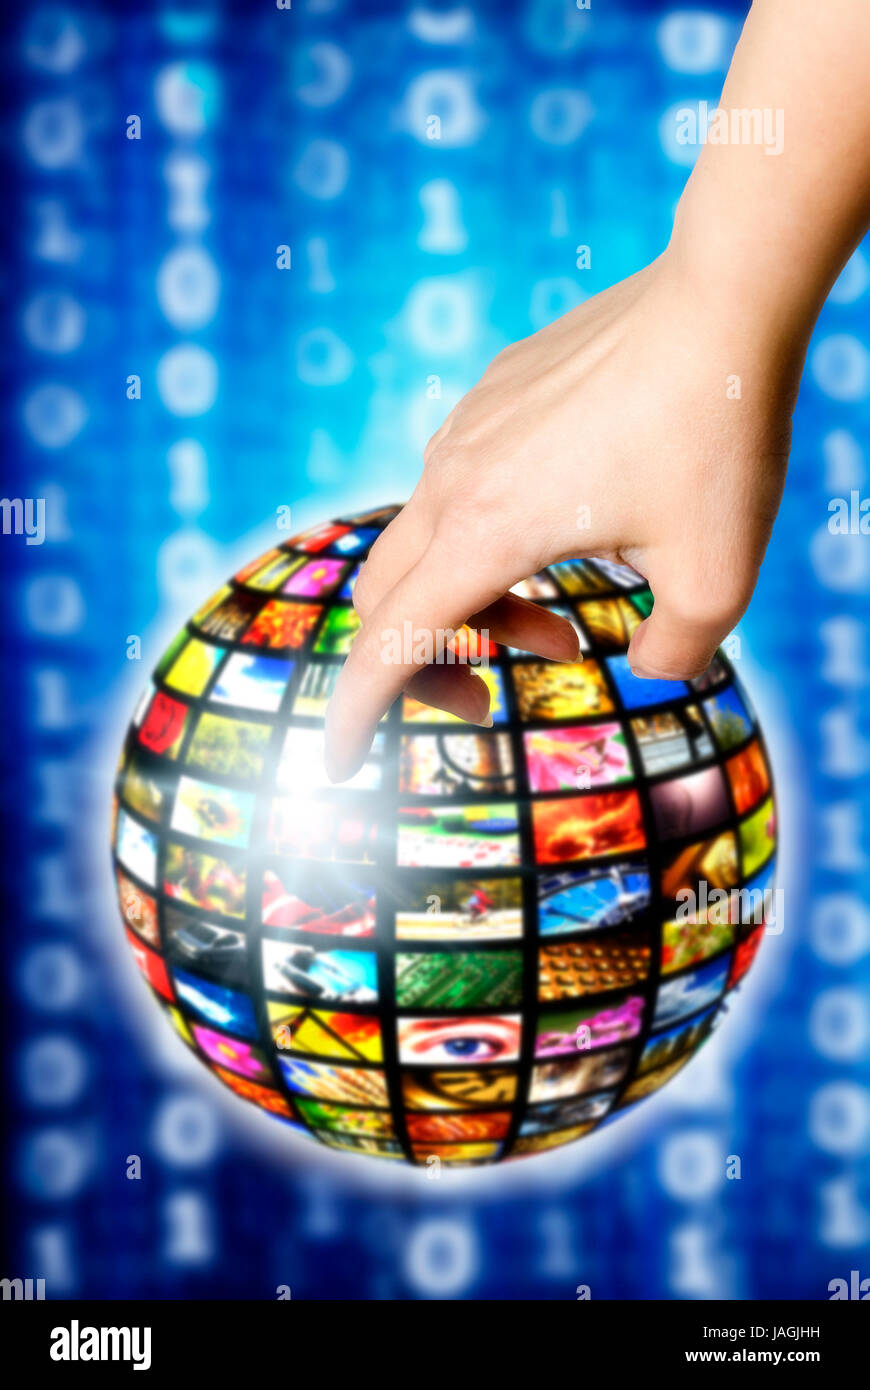 conceptual illustration for digital world and television - Stock Image